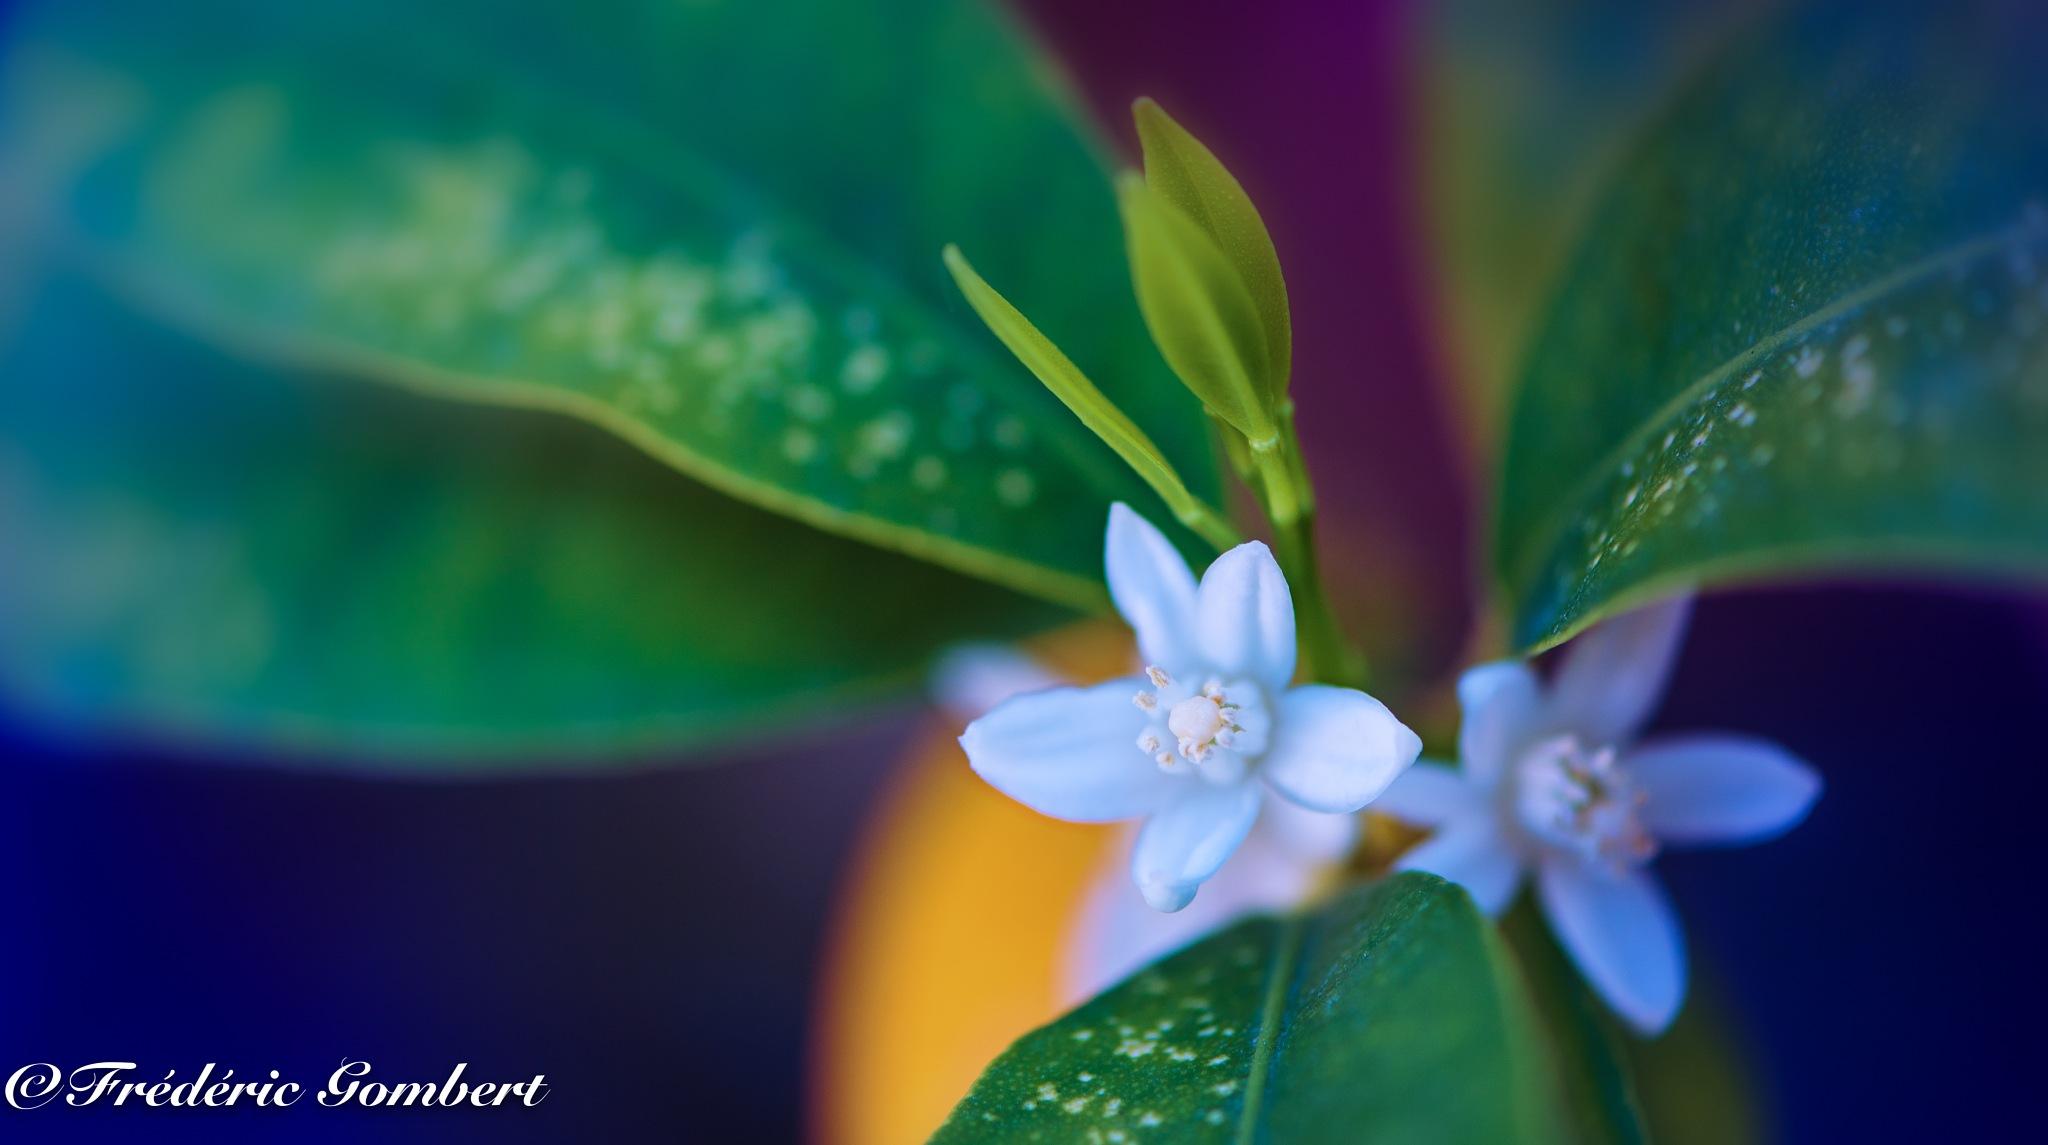 Story of Spring by Frederic Gombert